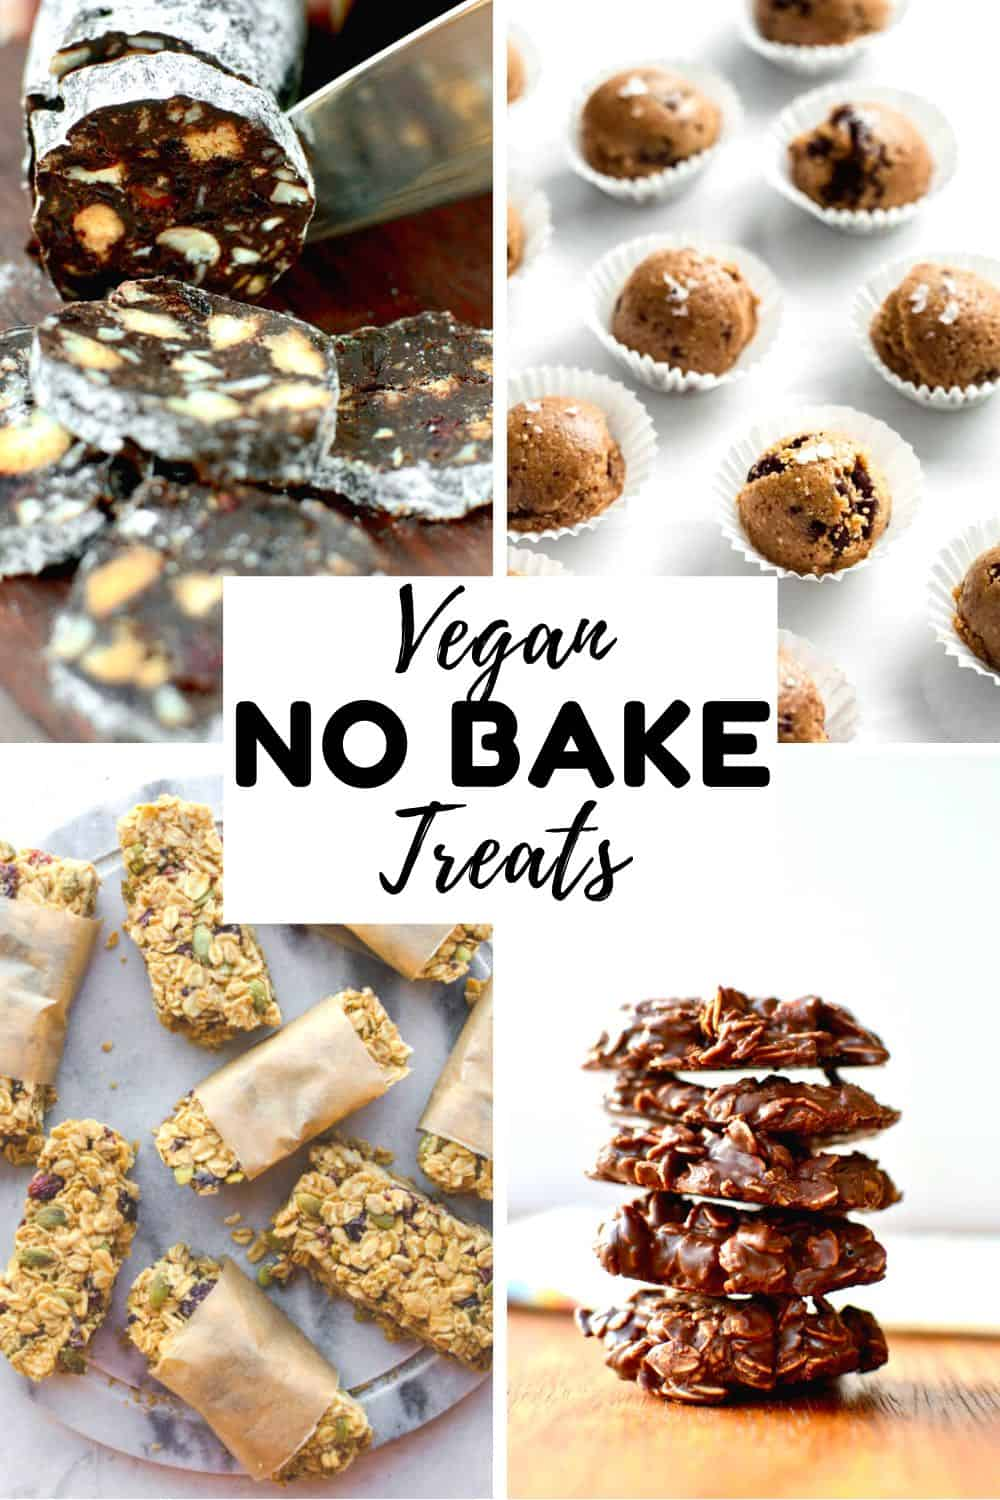 A collage of cookies, chocolate salami, granola bars and energy balls. Text reads: Vegan No Bake Treats